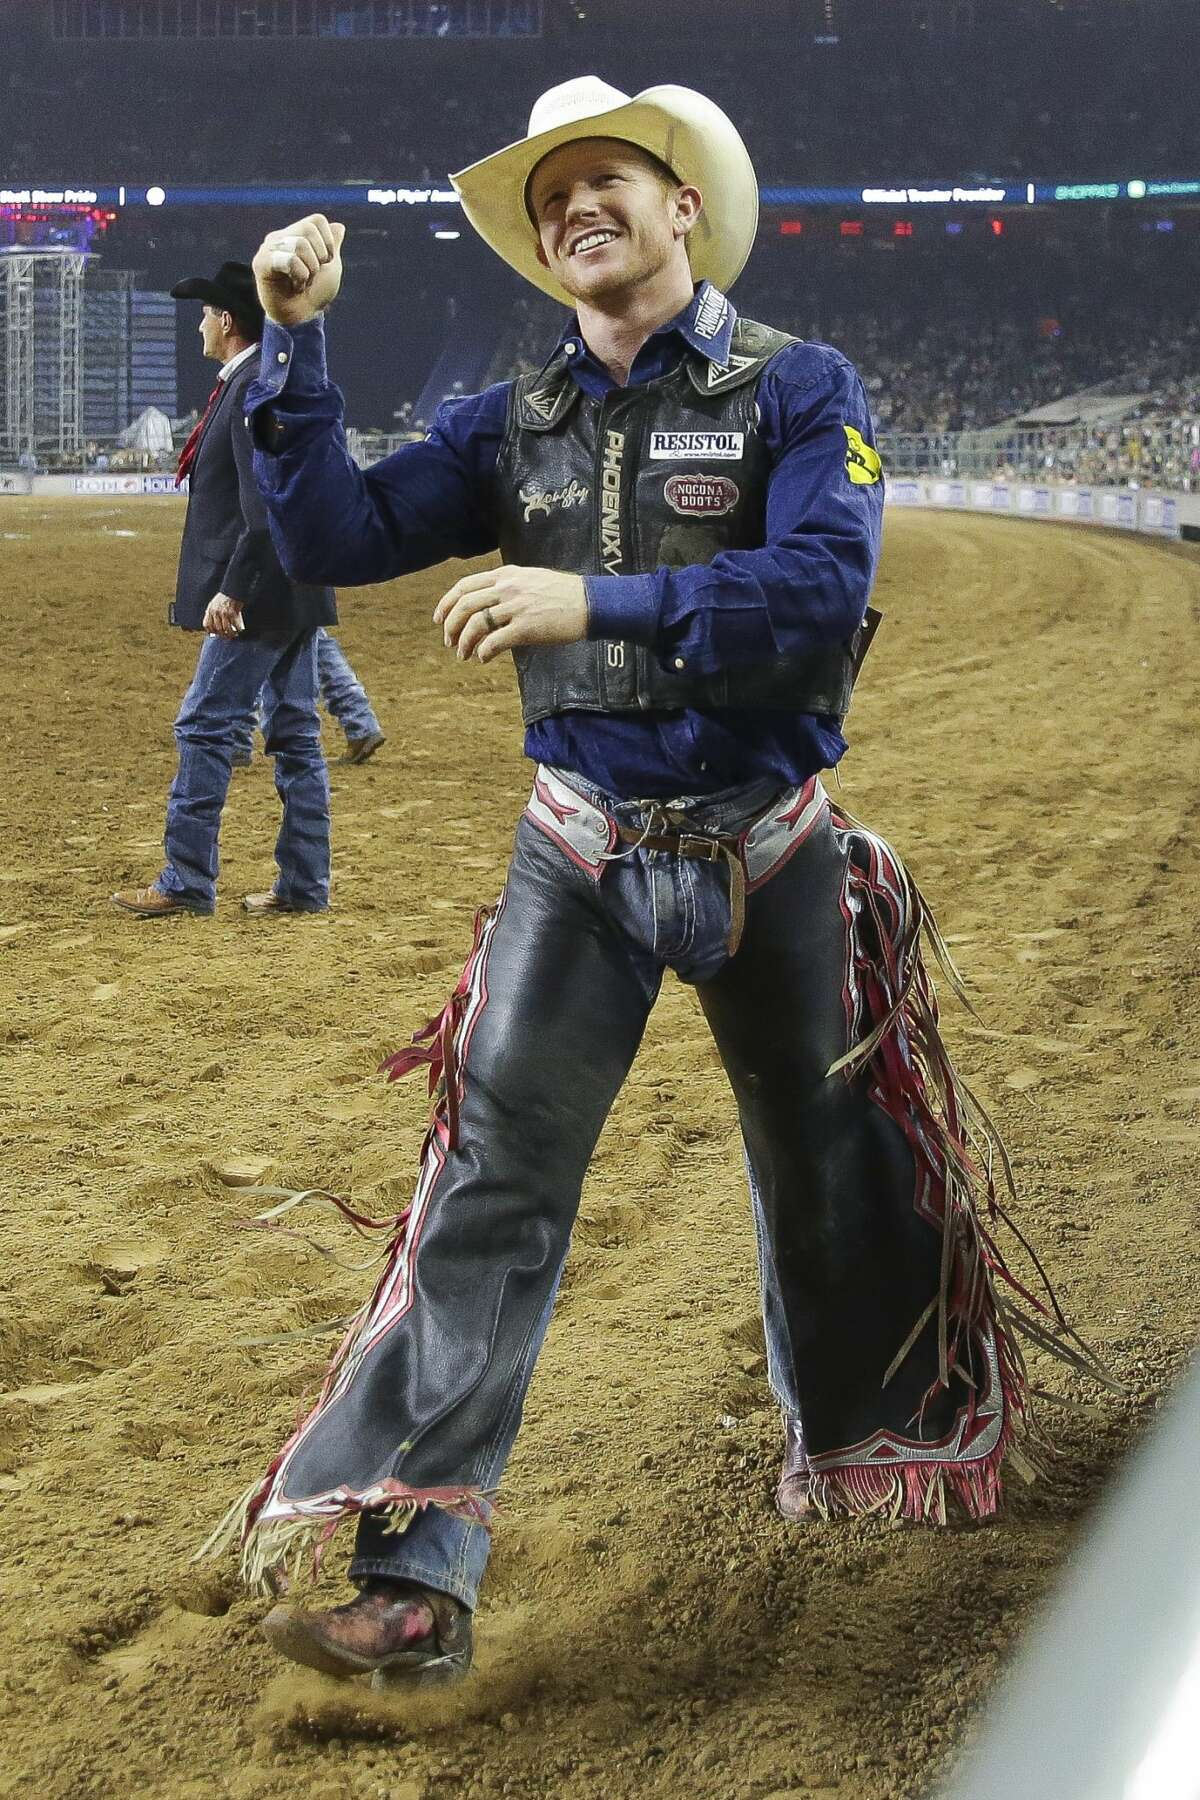 Saddle bronc rider Jacobs Crawley celebrates after he scored 91 points for a first place ride during round three of Super Series III at the Houston Livestock Show and Rodeo Wednesday, March 15, 2017 in Houston. ( Michael Ciaglo / Houston Chronicle )